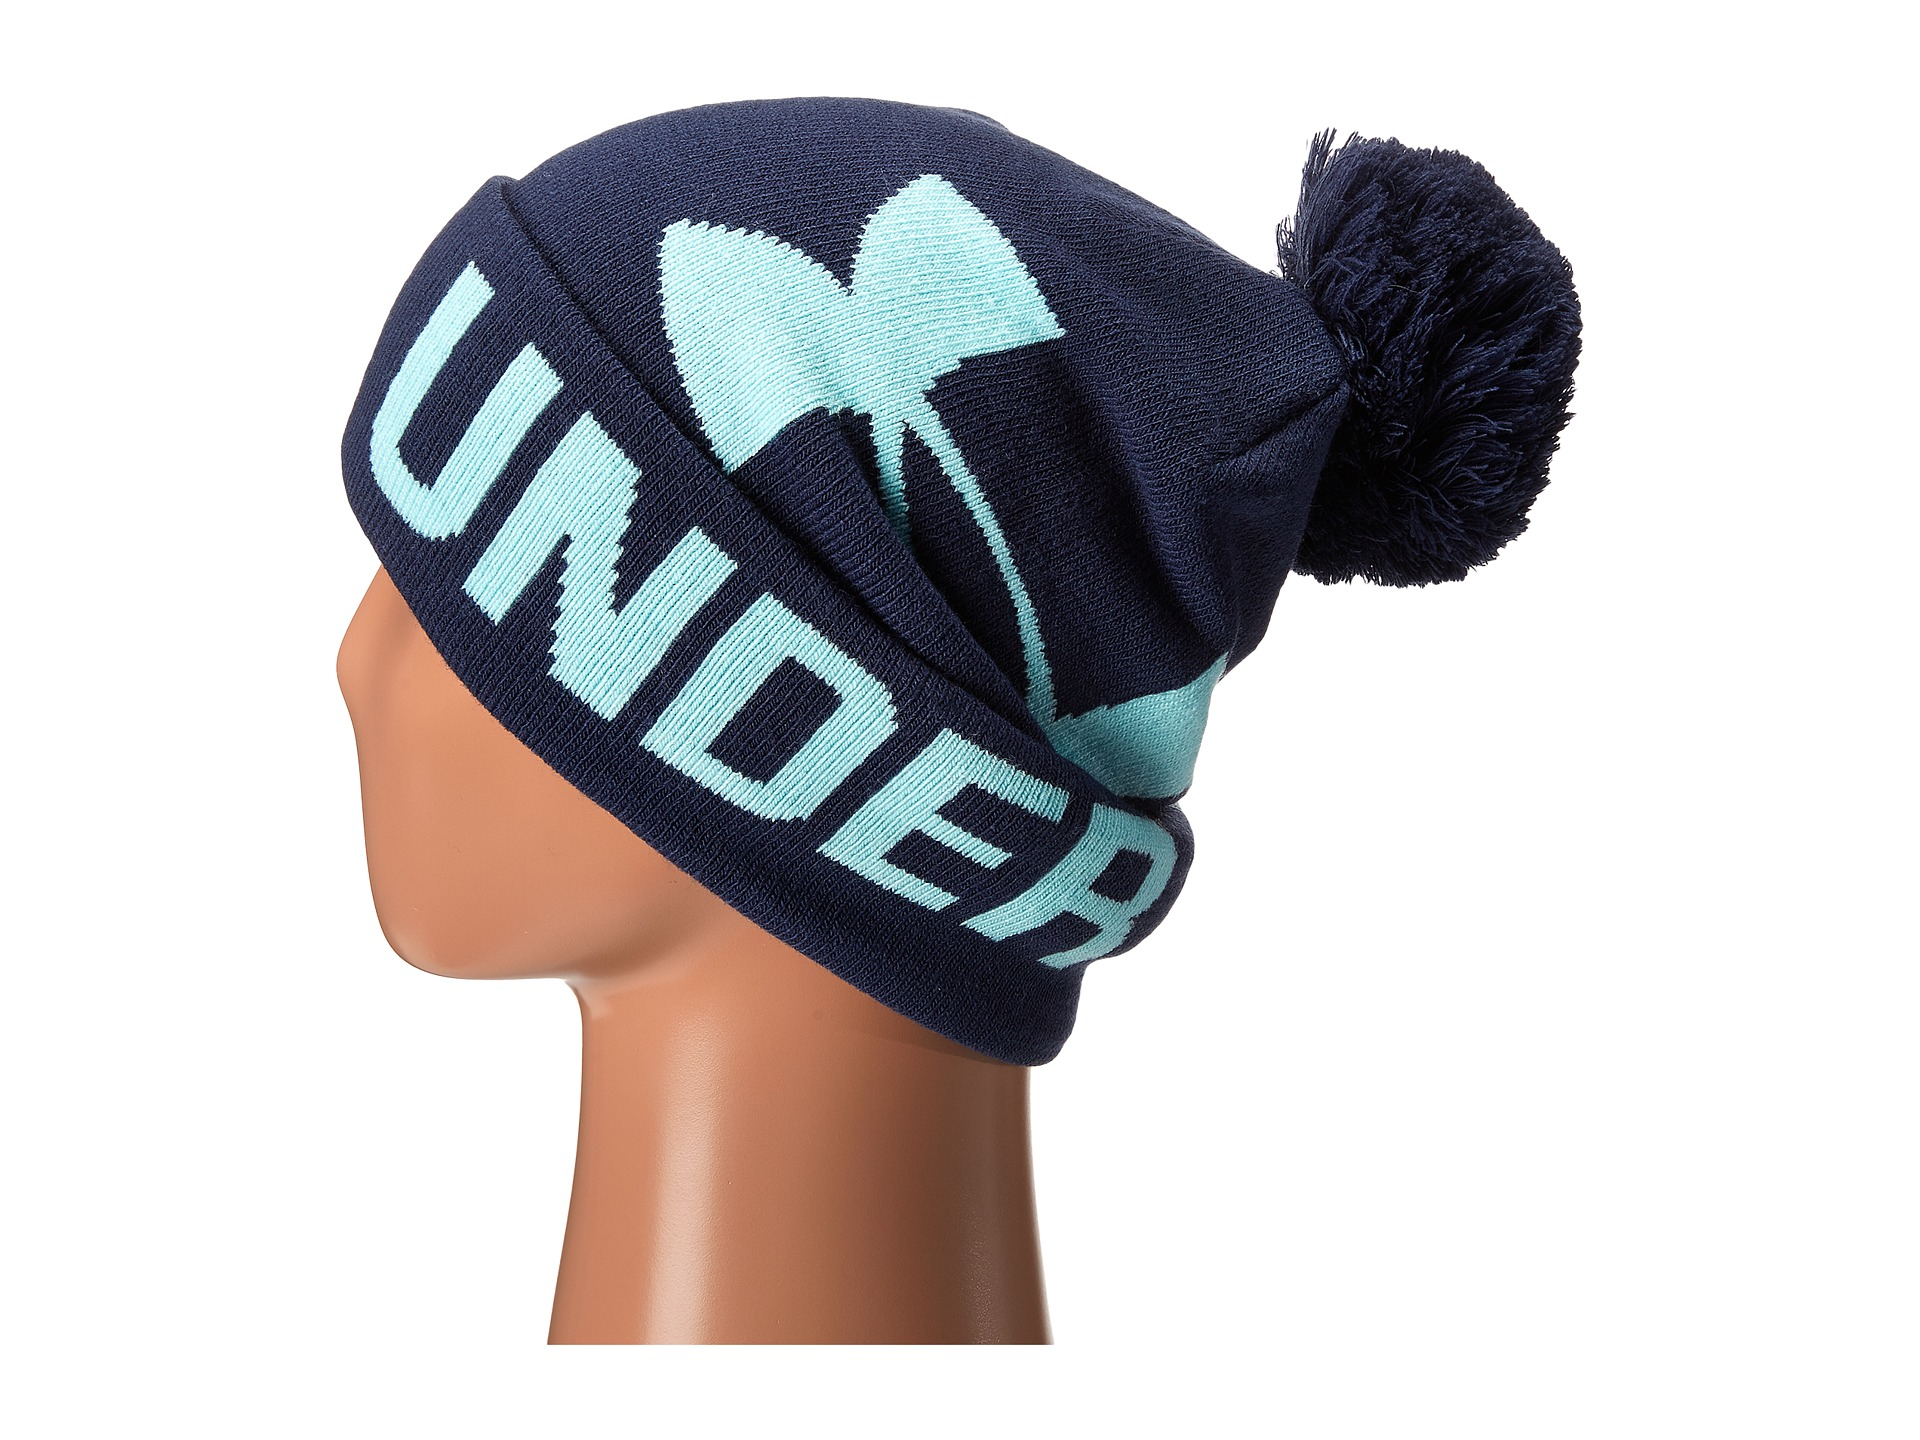 Lyst - Under Armour Ua Graphic Pom Pom Beanie in Blue 891ea2f84